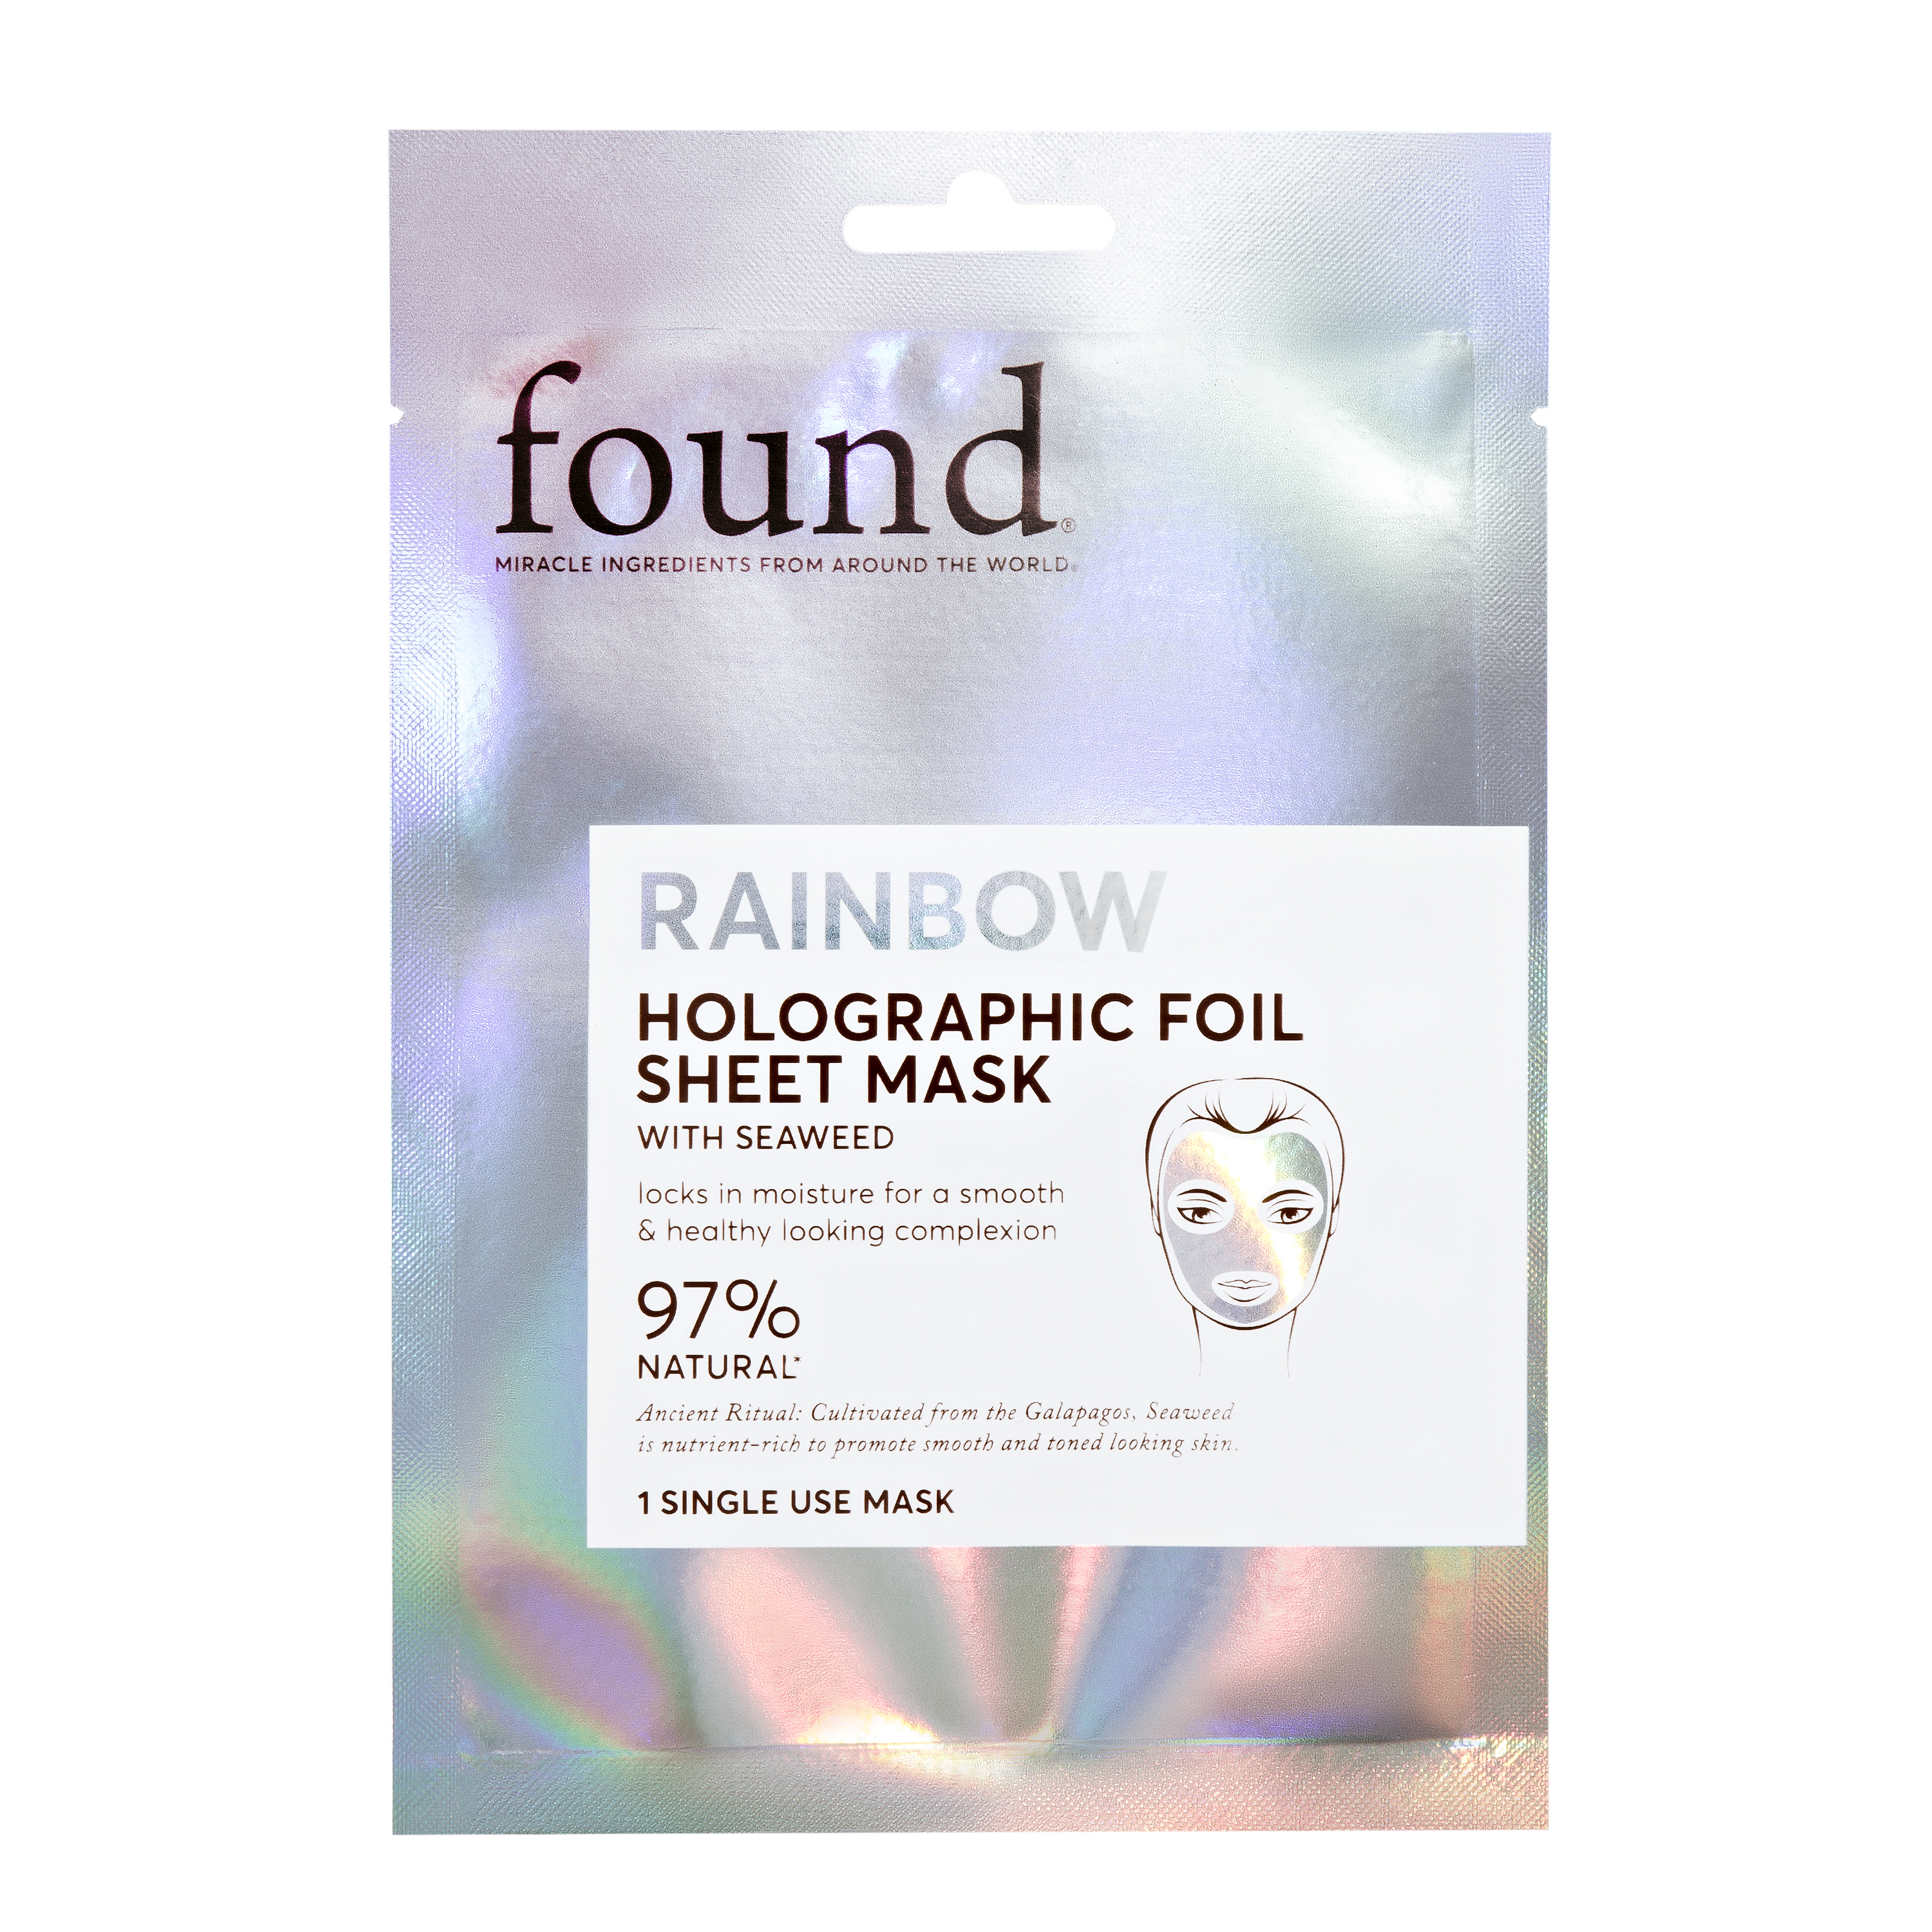 FND Rainbow Holographic Foil Sheet Mask with Seaweed, 1 Single use mask